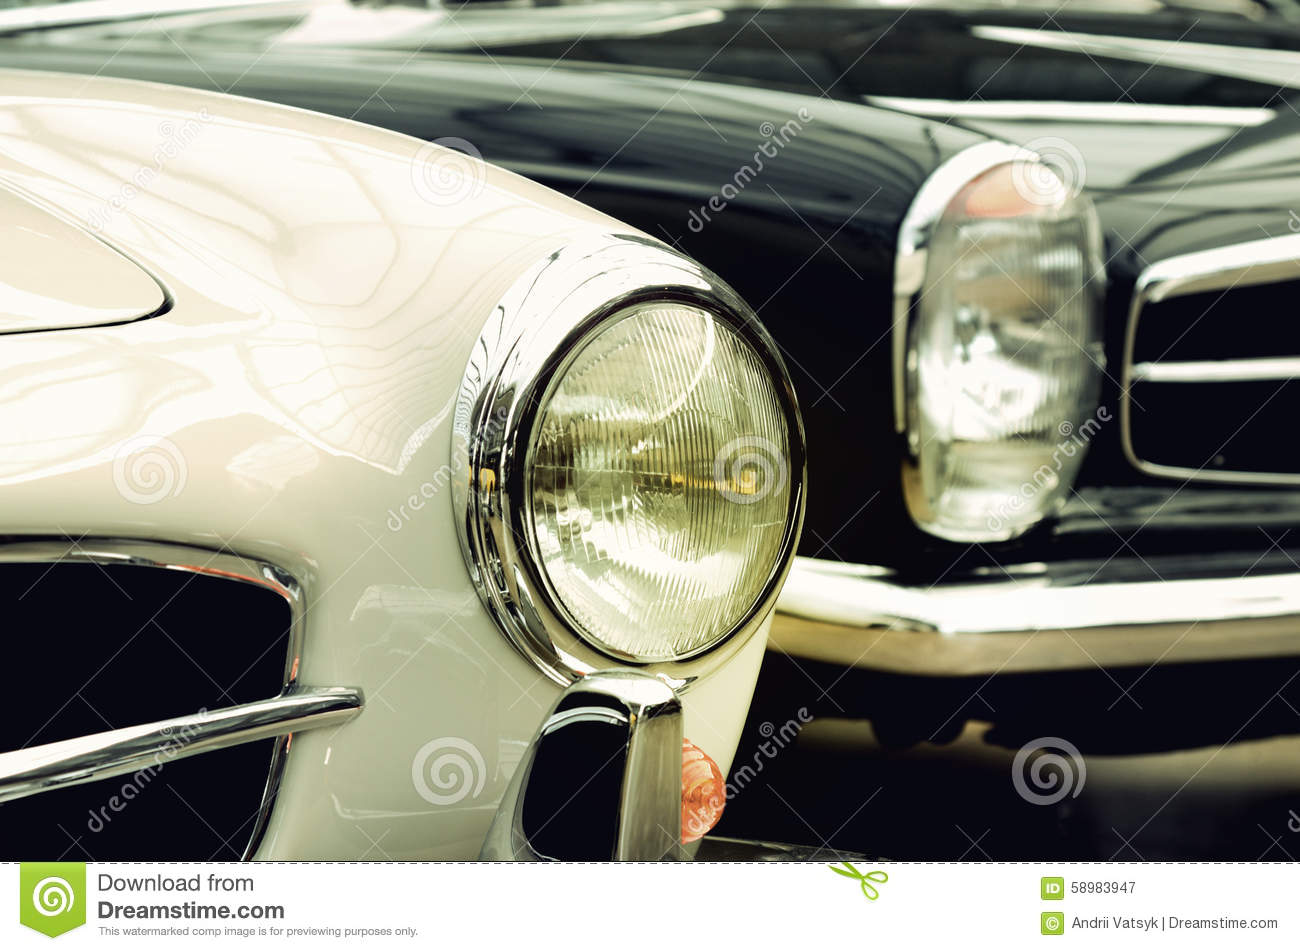 Vintage Auto Headlight Styles : Headlights old cars in vintage style good and evil